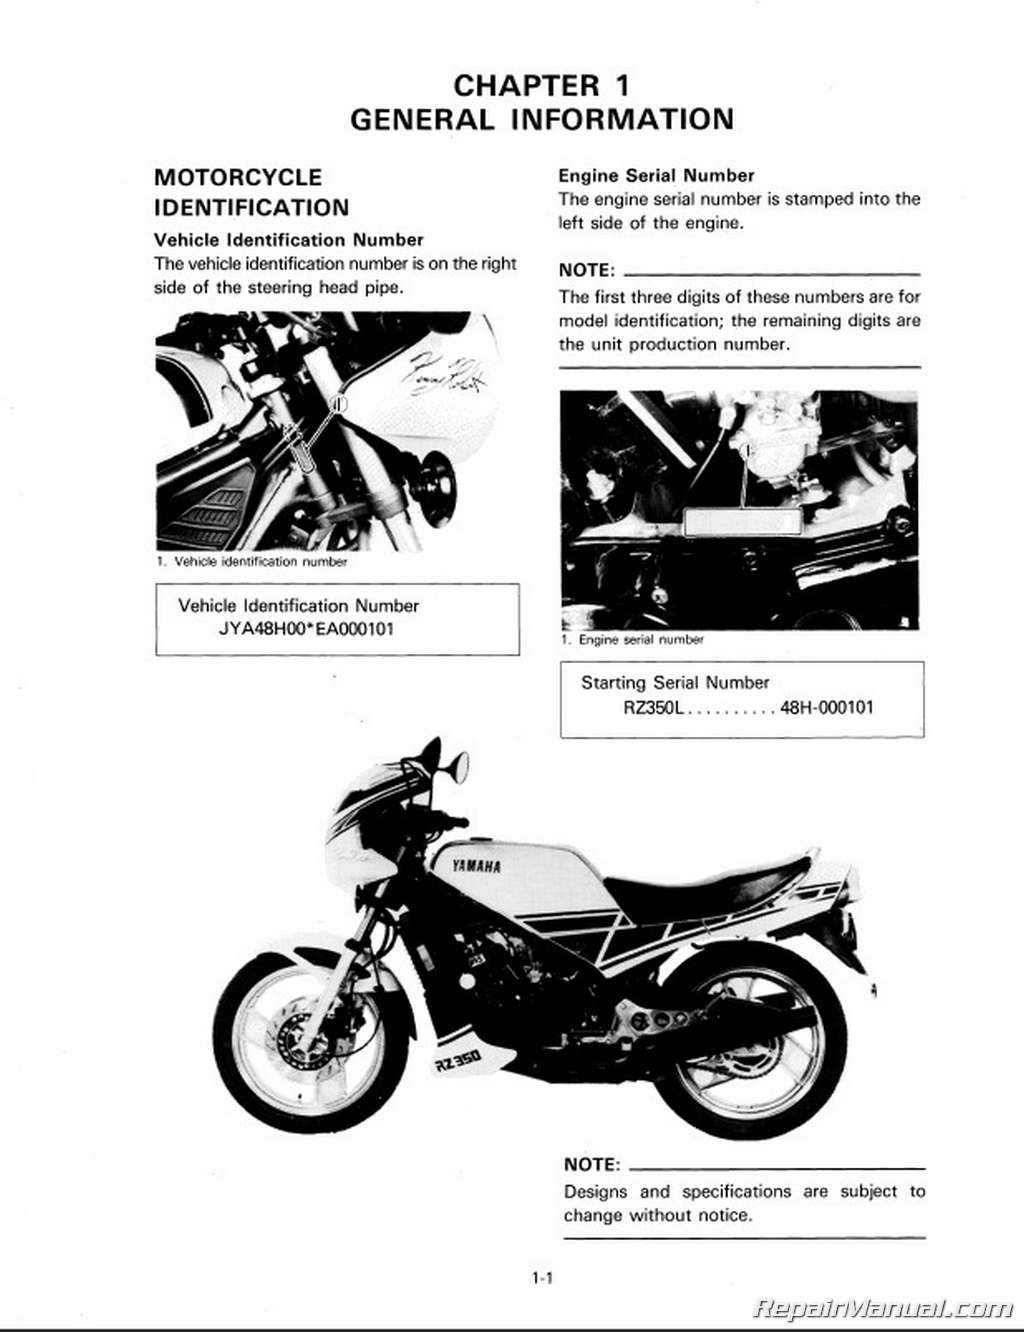 Yamaha Rz350 Manual Motorcycle Service